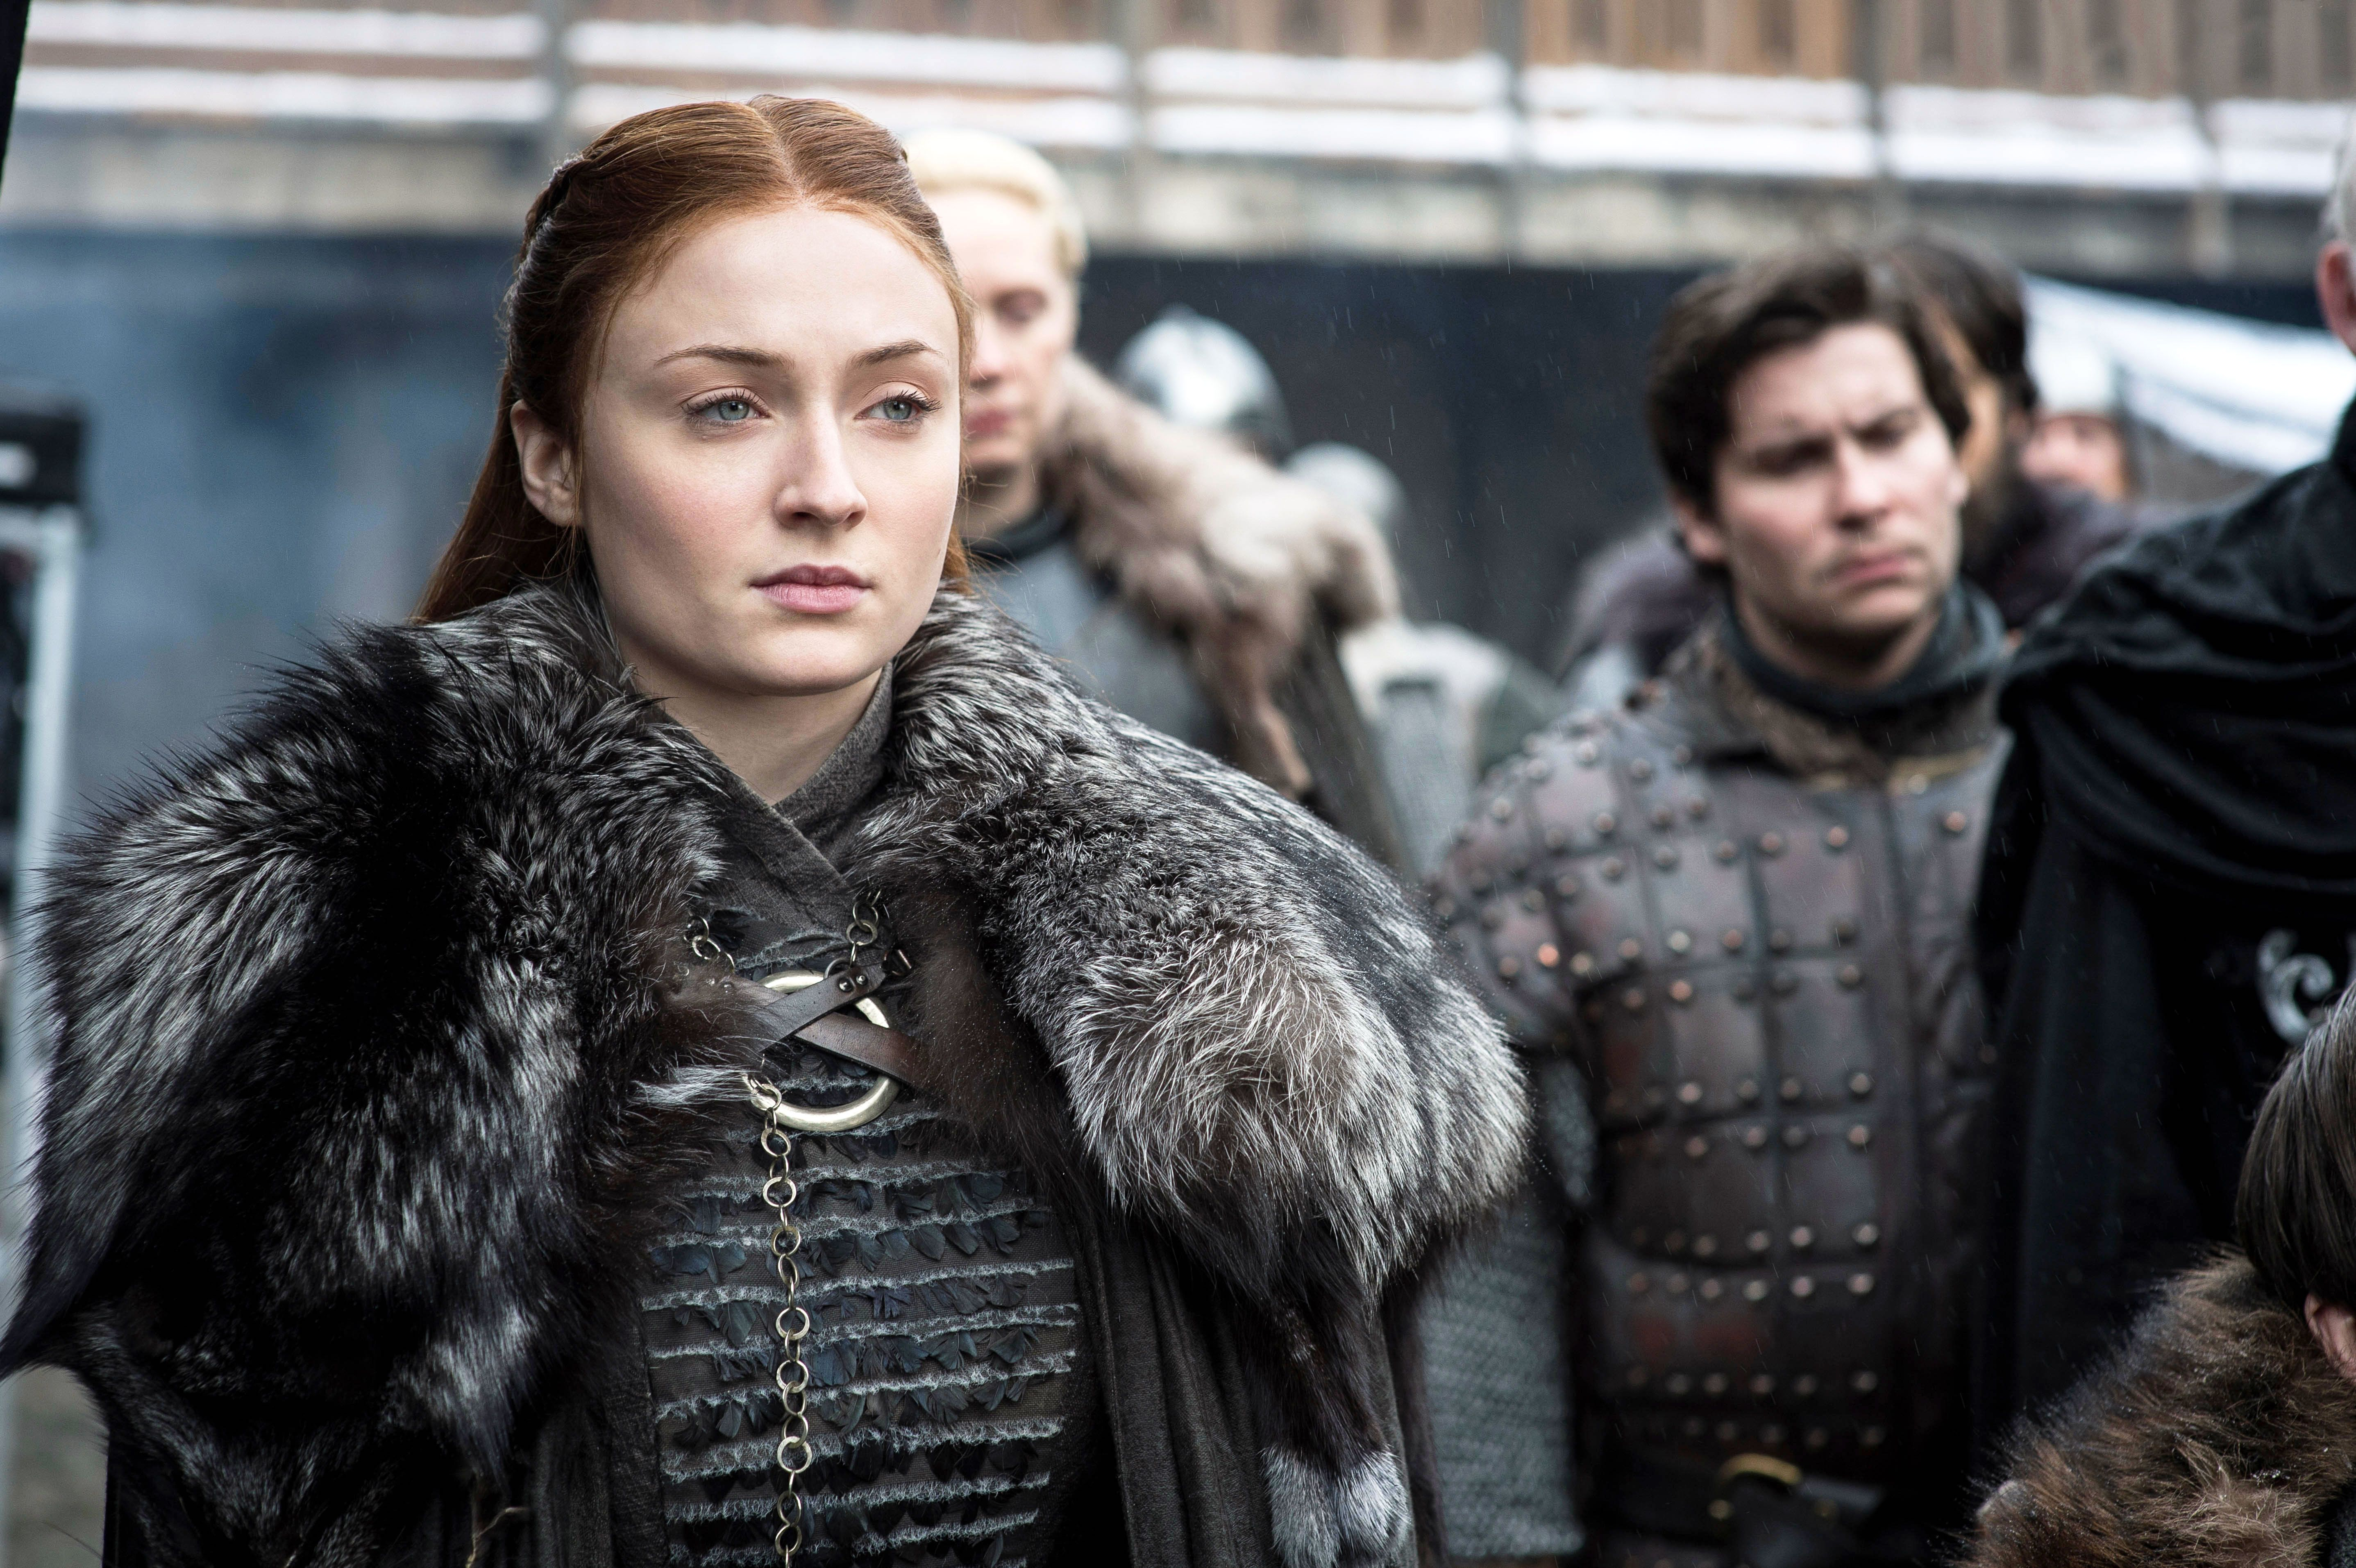 How to Dress Like Starbucks Sansa Stark This Halloween